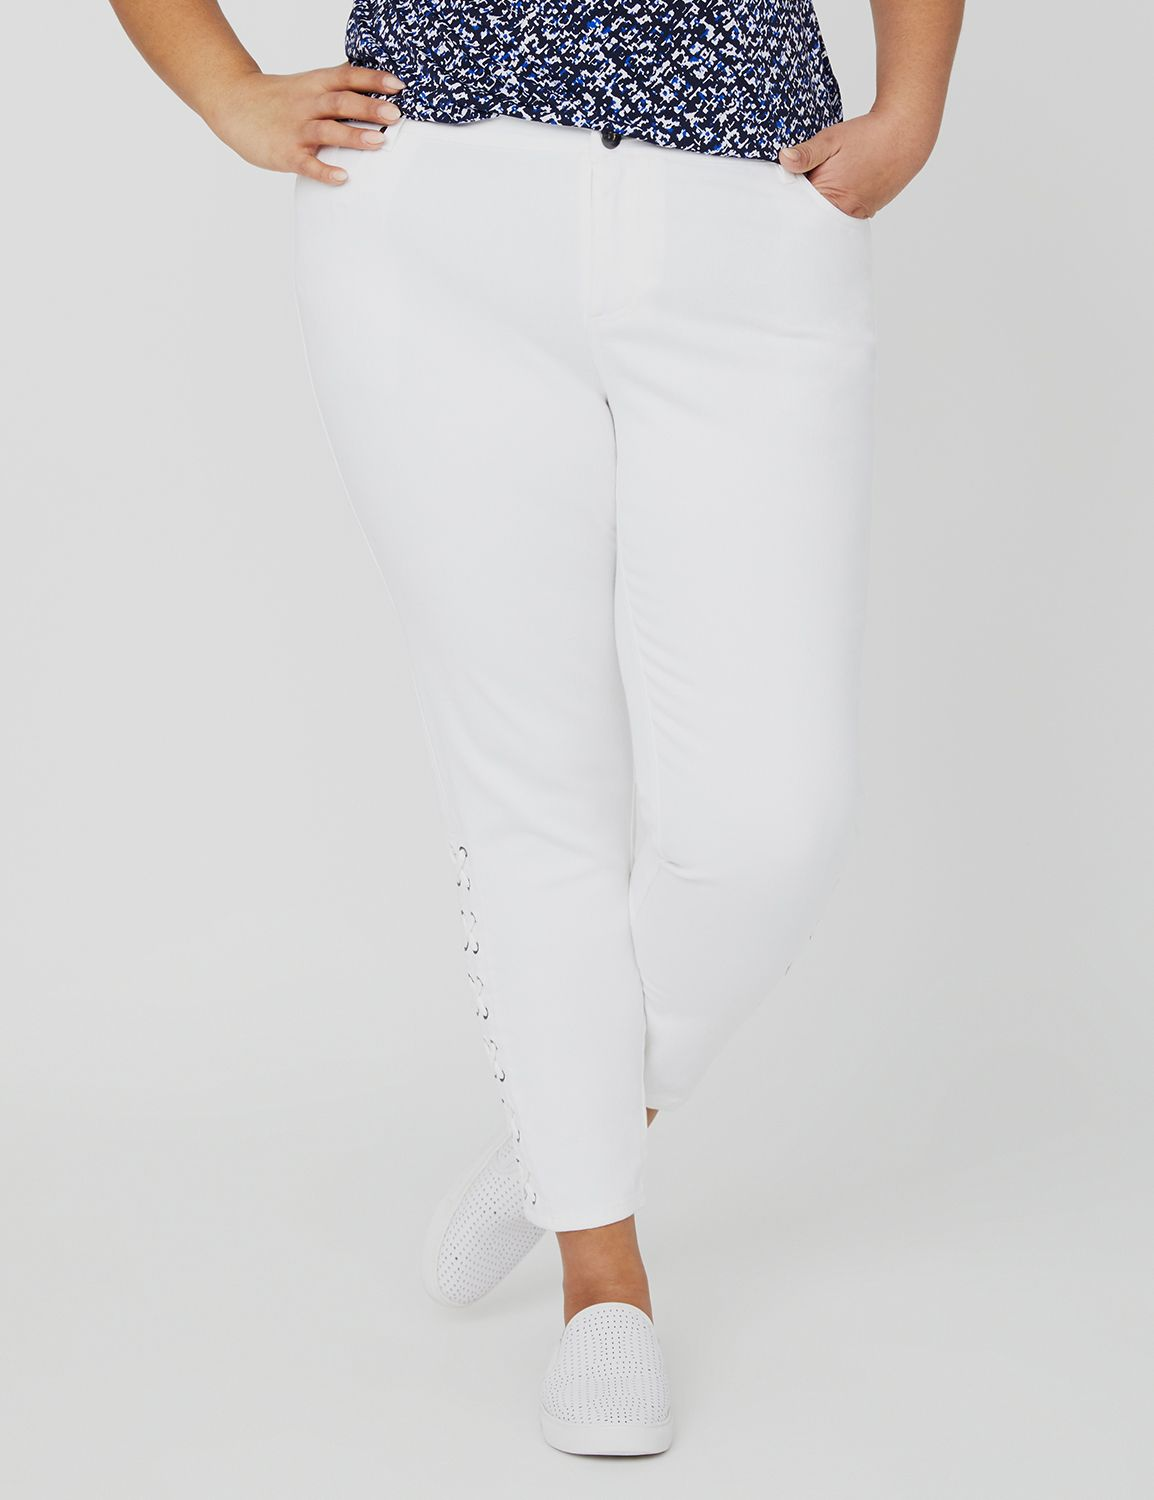 Curvy Collection Lace-Up White Jean 1091485 Curvy Collection Sateen Whi MP-300098712